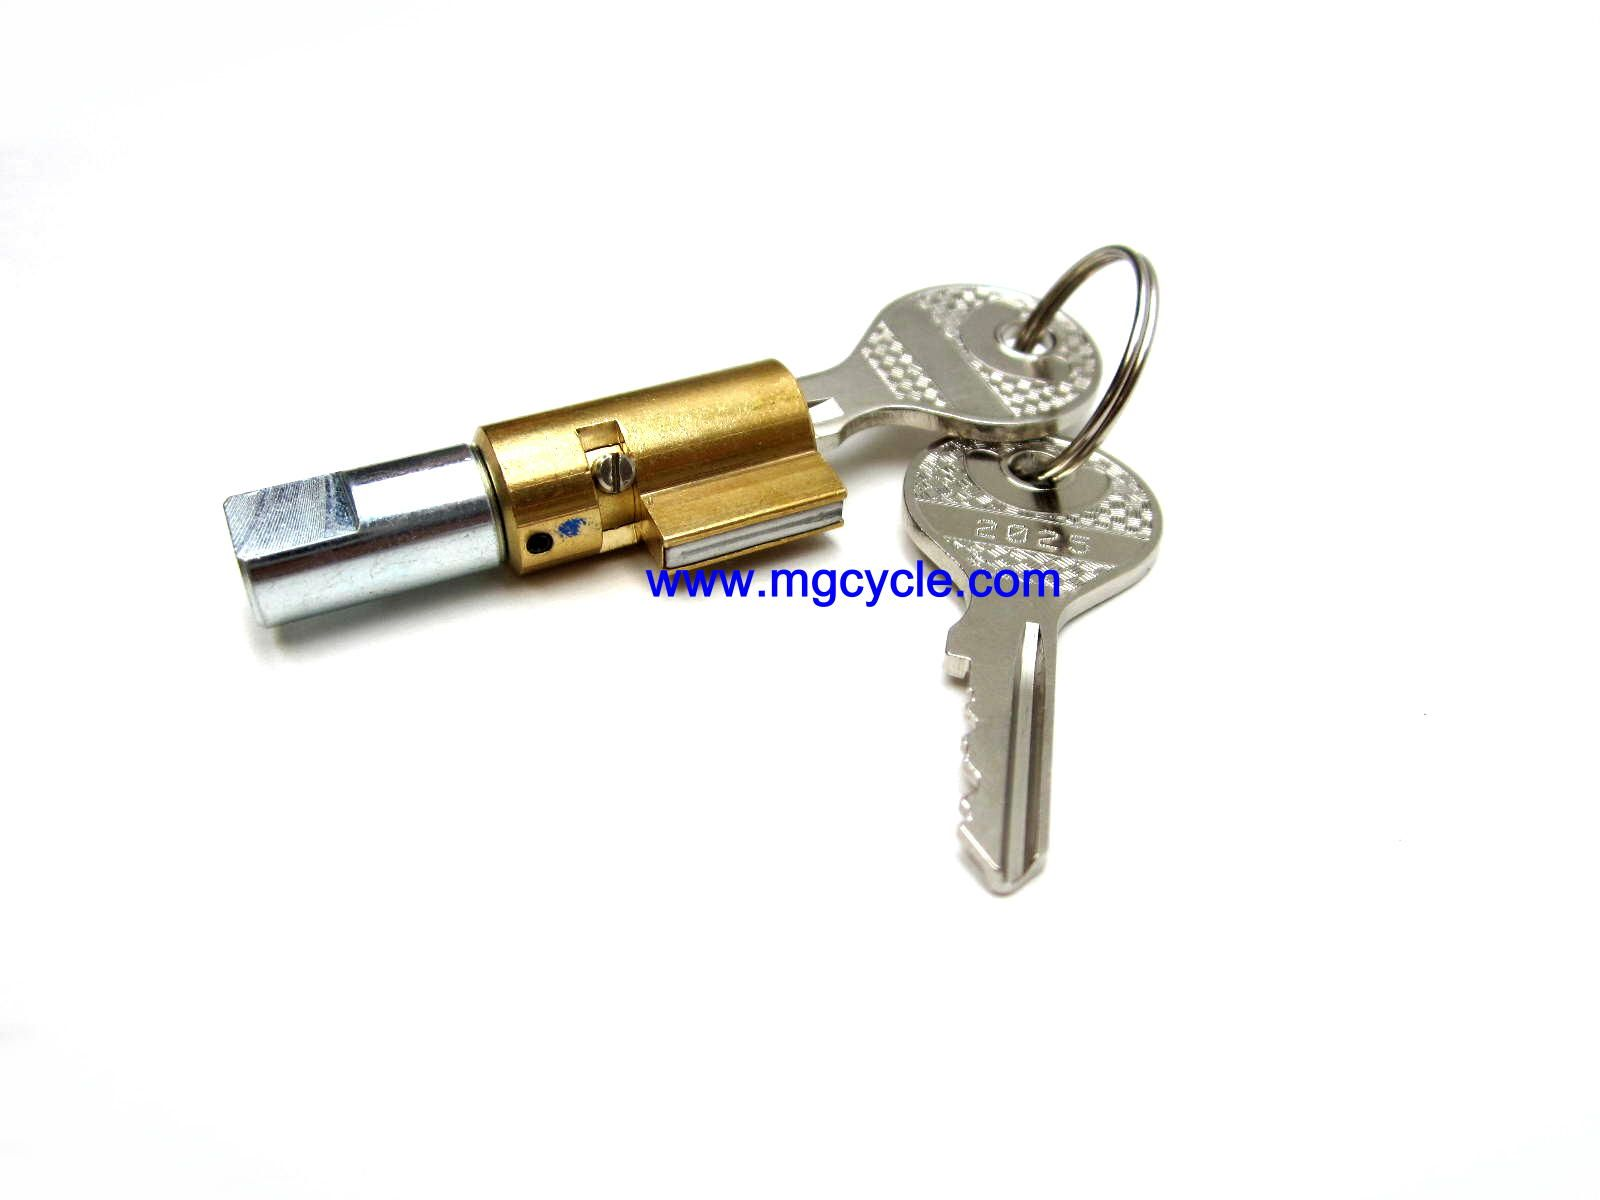 Fork lock, steering lock with keys Eldo T T3 G5 Convert LM1/2 SP